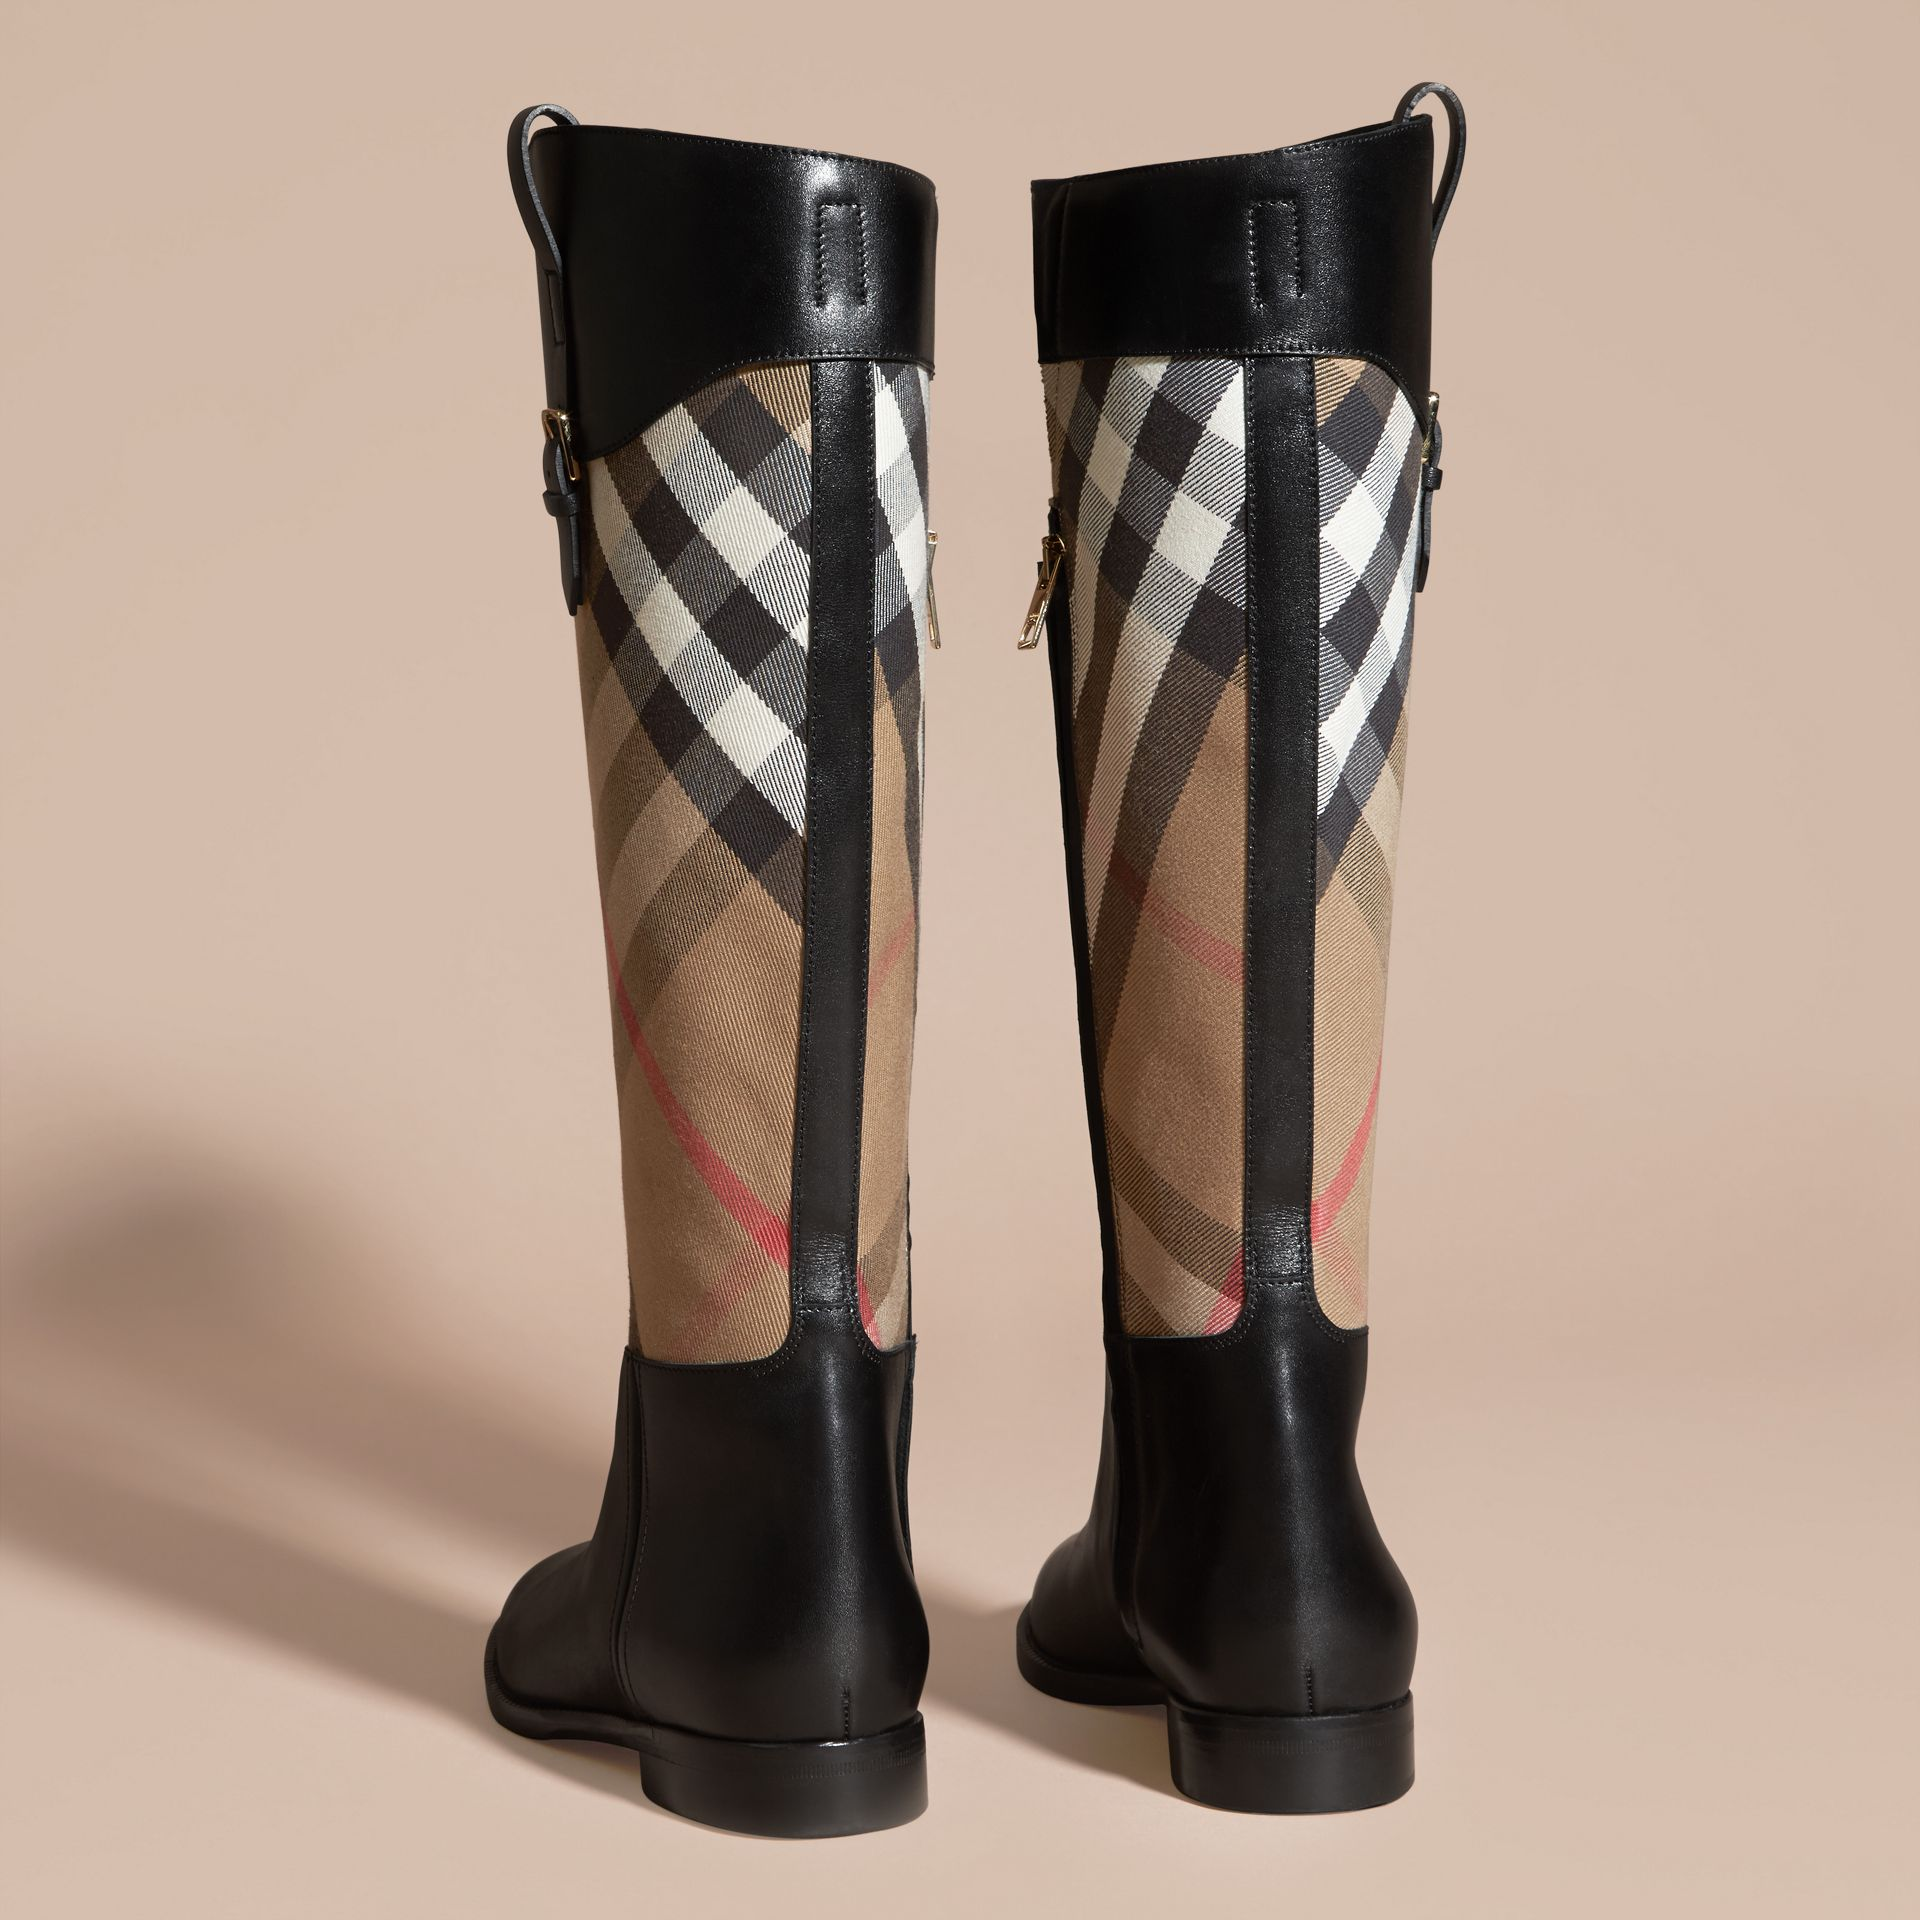 House Check and Leather Riding Boots in Black - Women | Burberry - gallery image 4